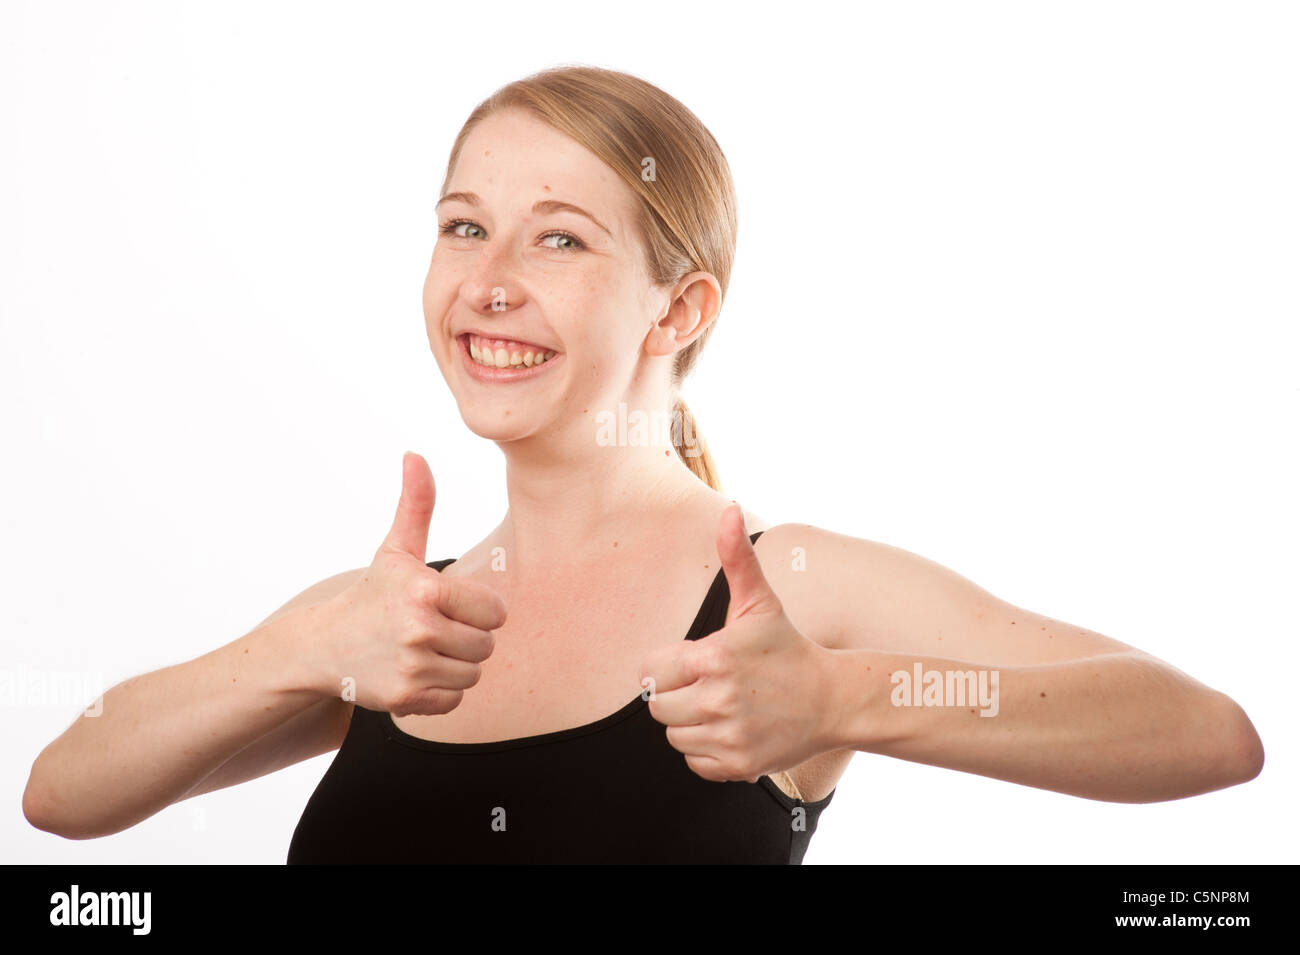 a young caucasian woman with her two thumbs up looking positive, uk - Stock Image